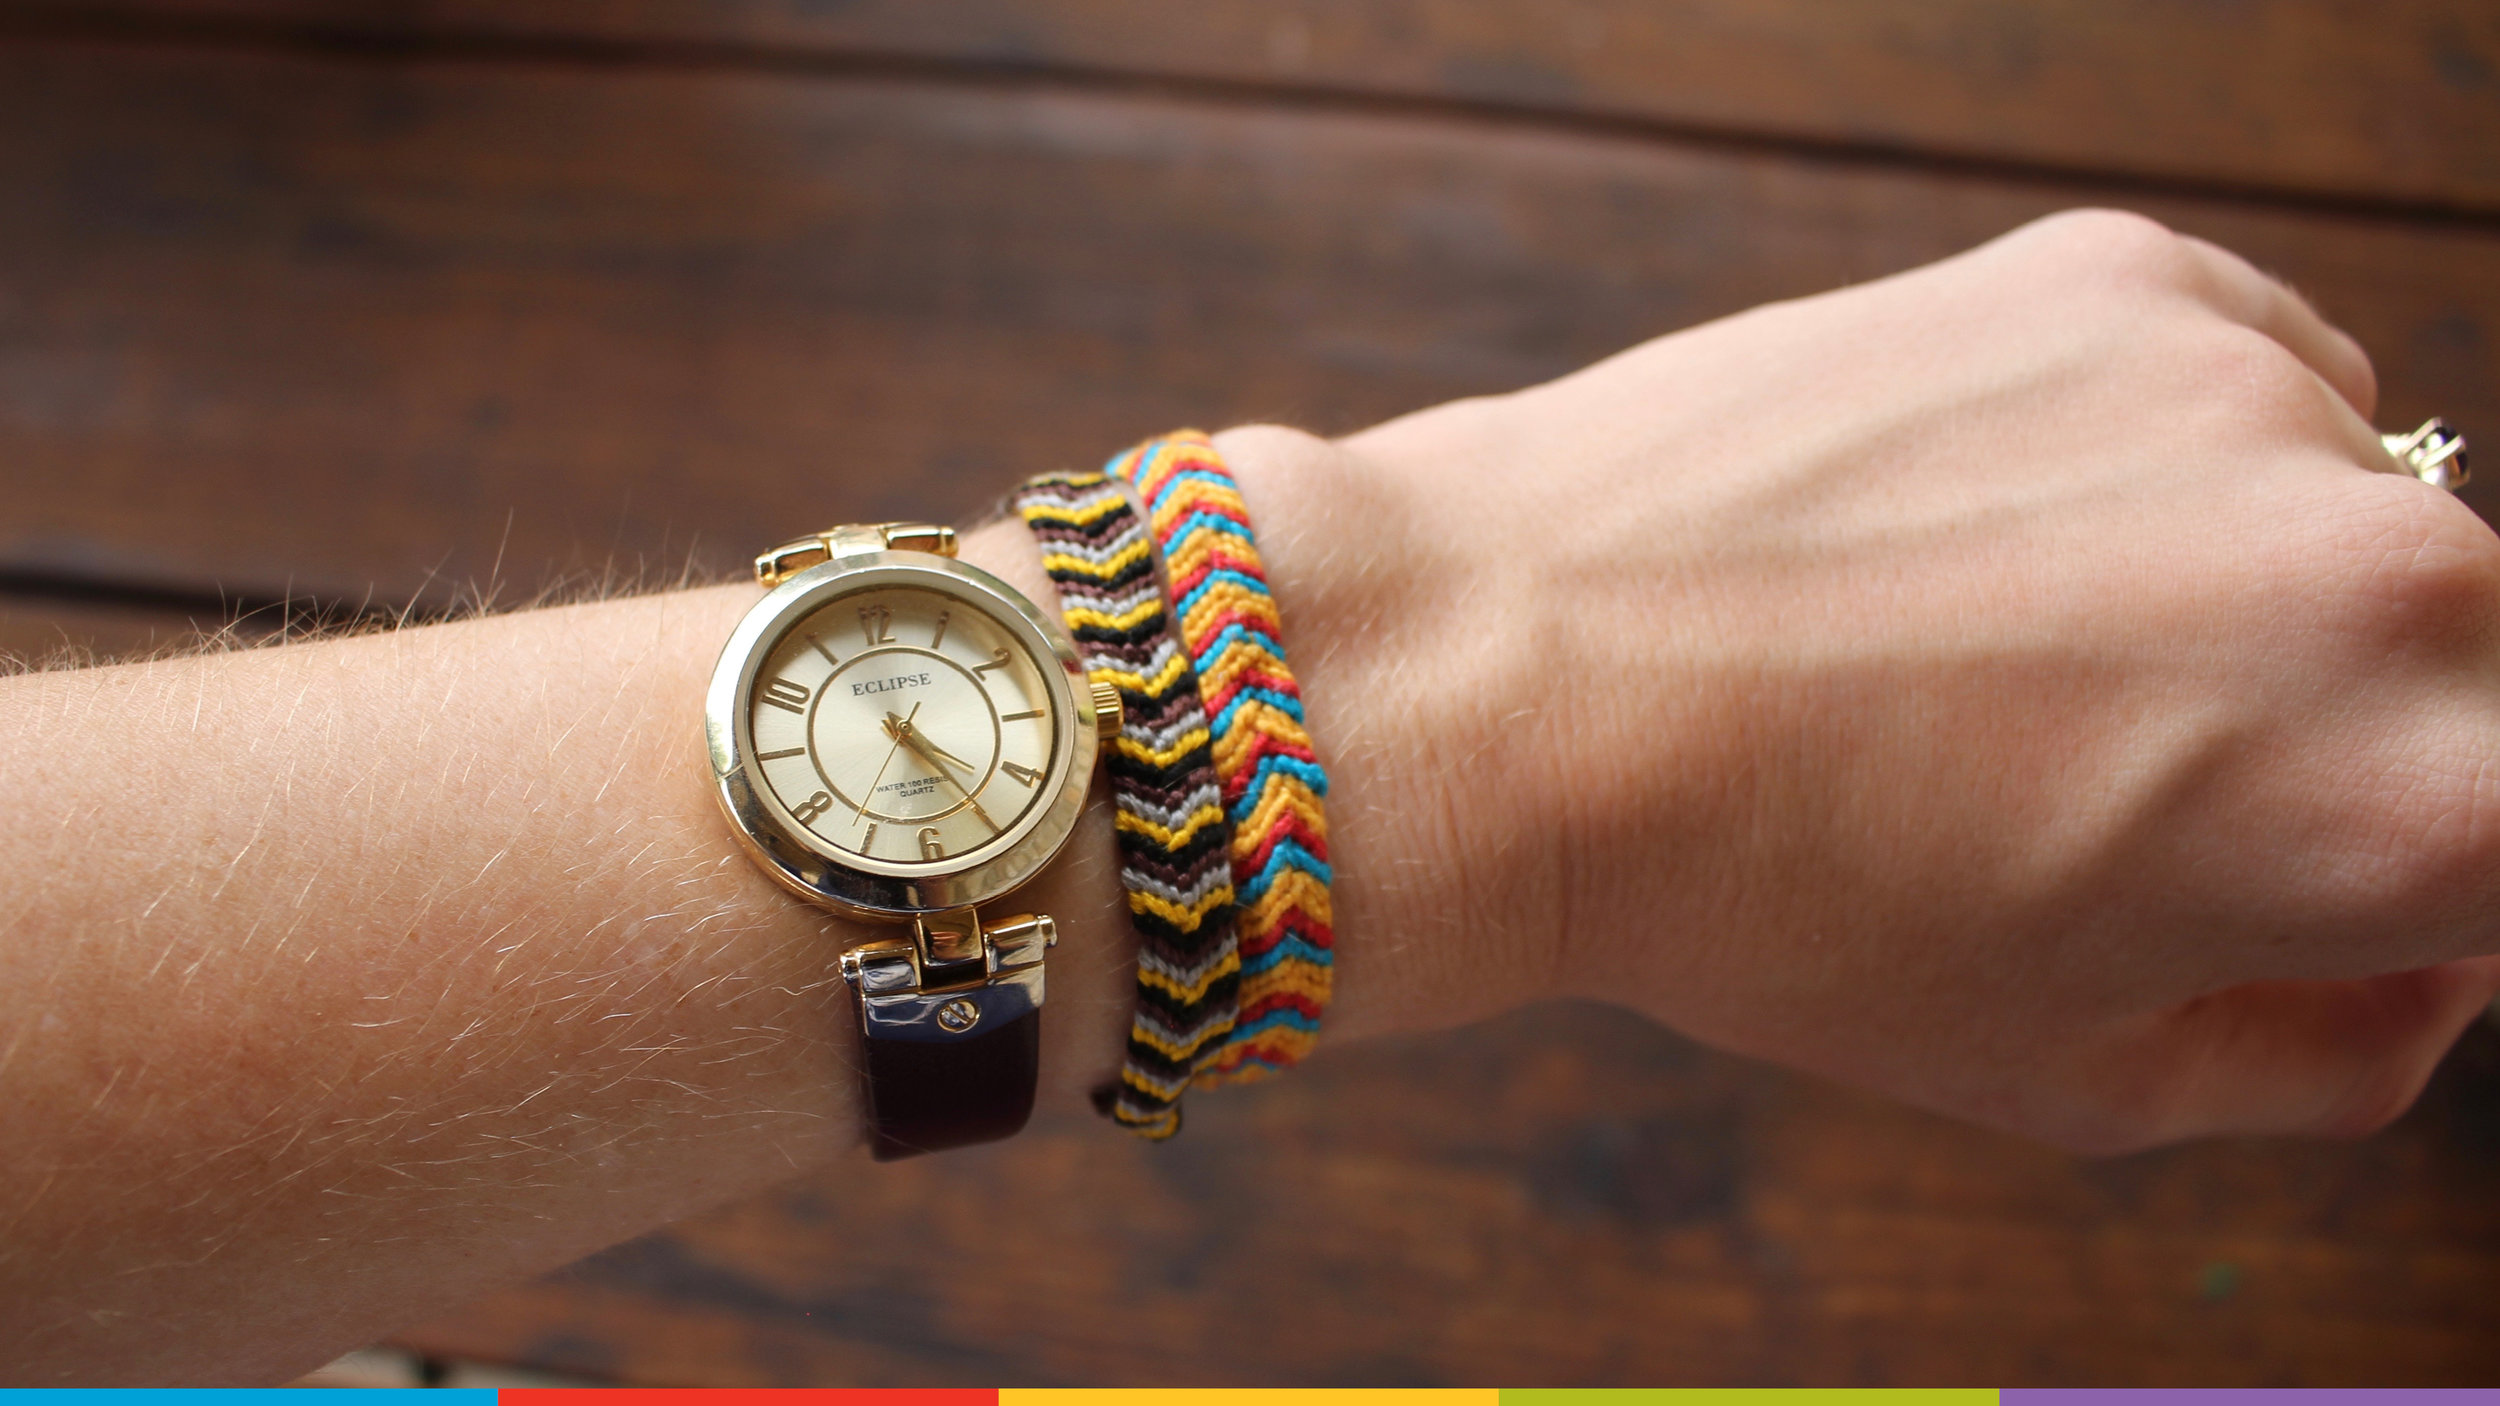 A photo of a wrist with two bracelets and a watch.  Photo from Christy Ash on Unsplash